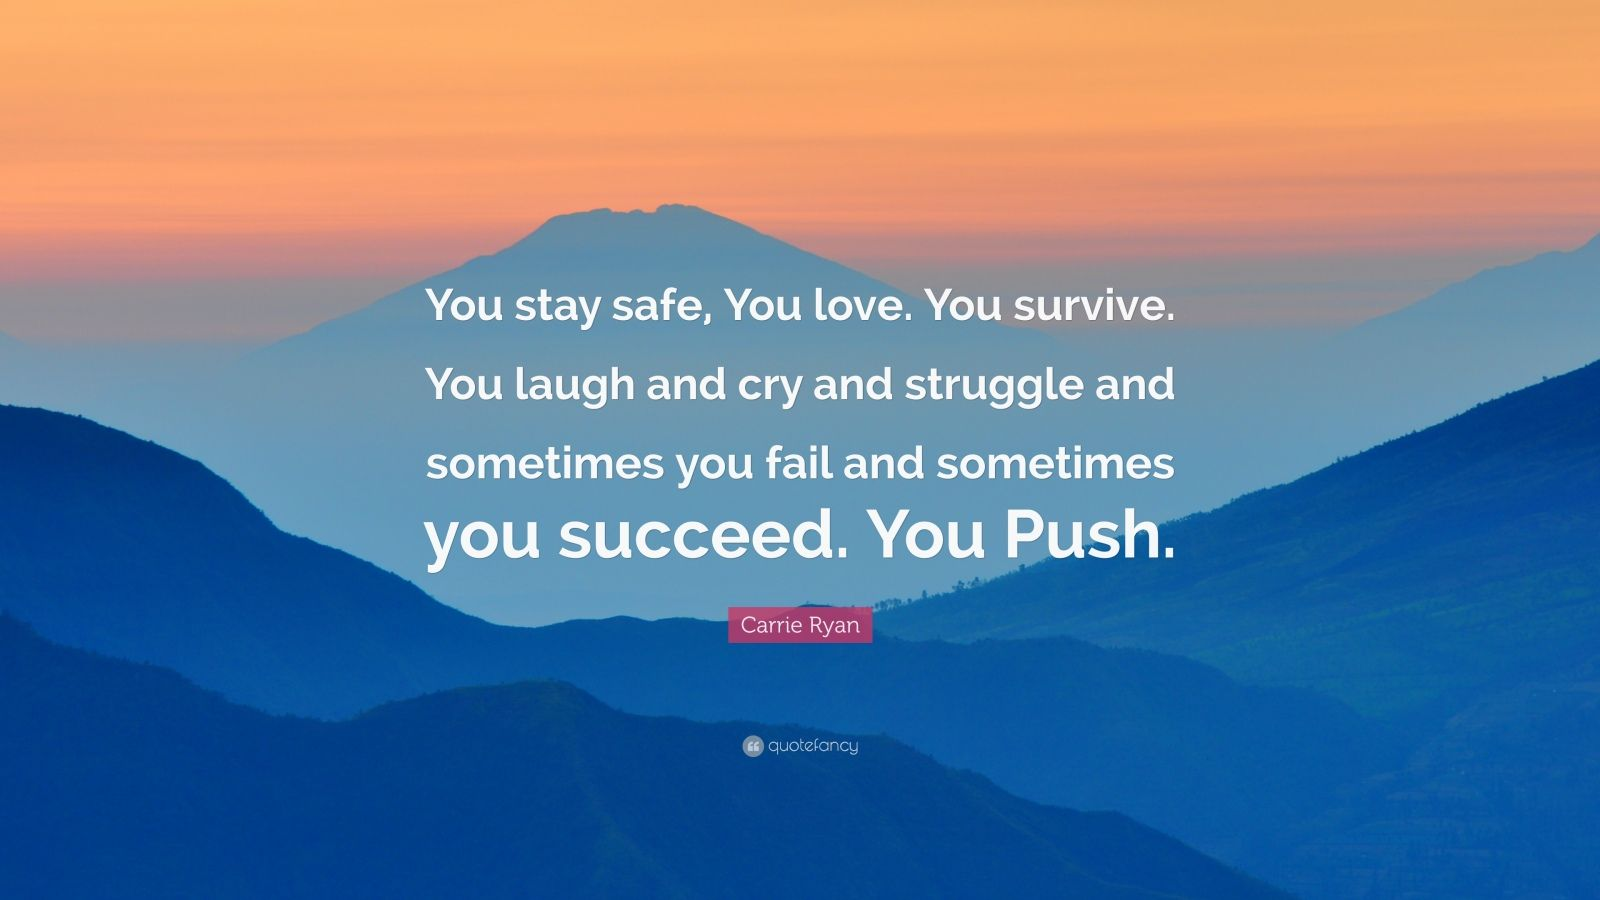 "Carrie Ryan Quote: ""You stay safe, You love. You survive. You laugh and cry and struggle and sometimes you fail and sometimes you succeed. You Push."""